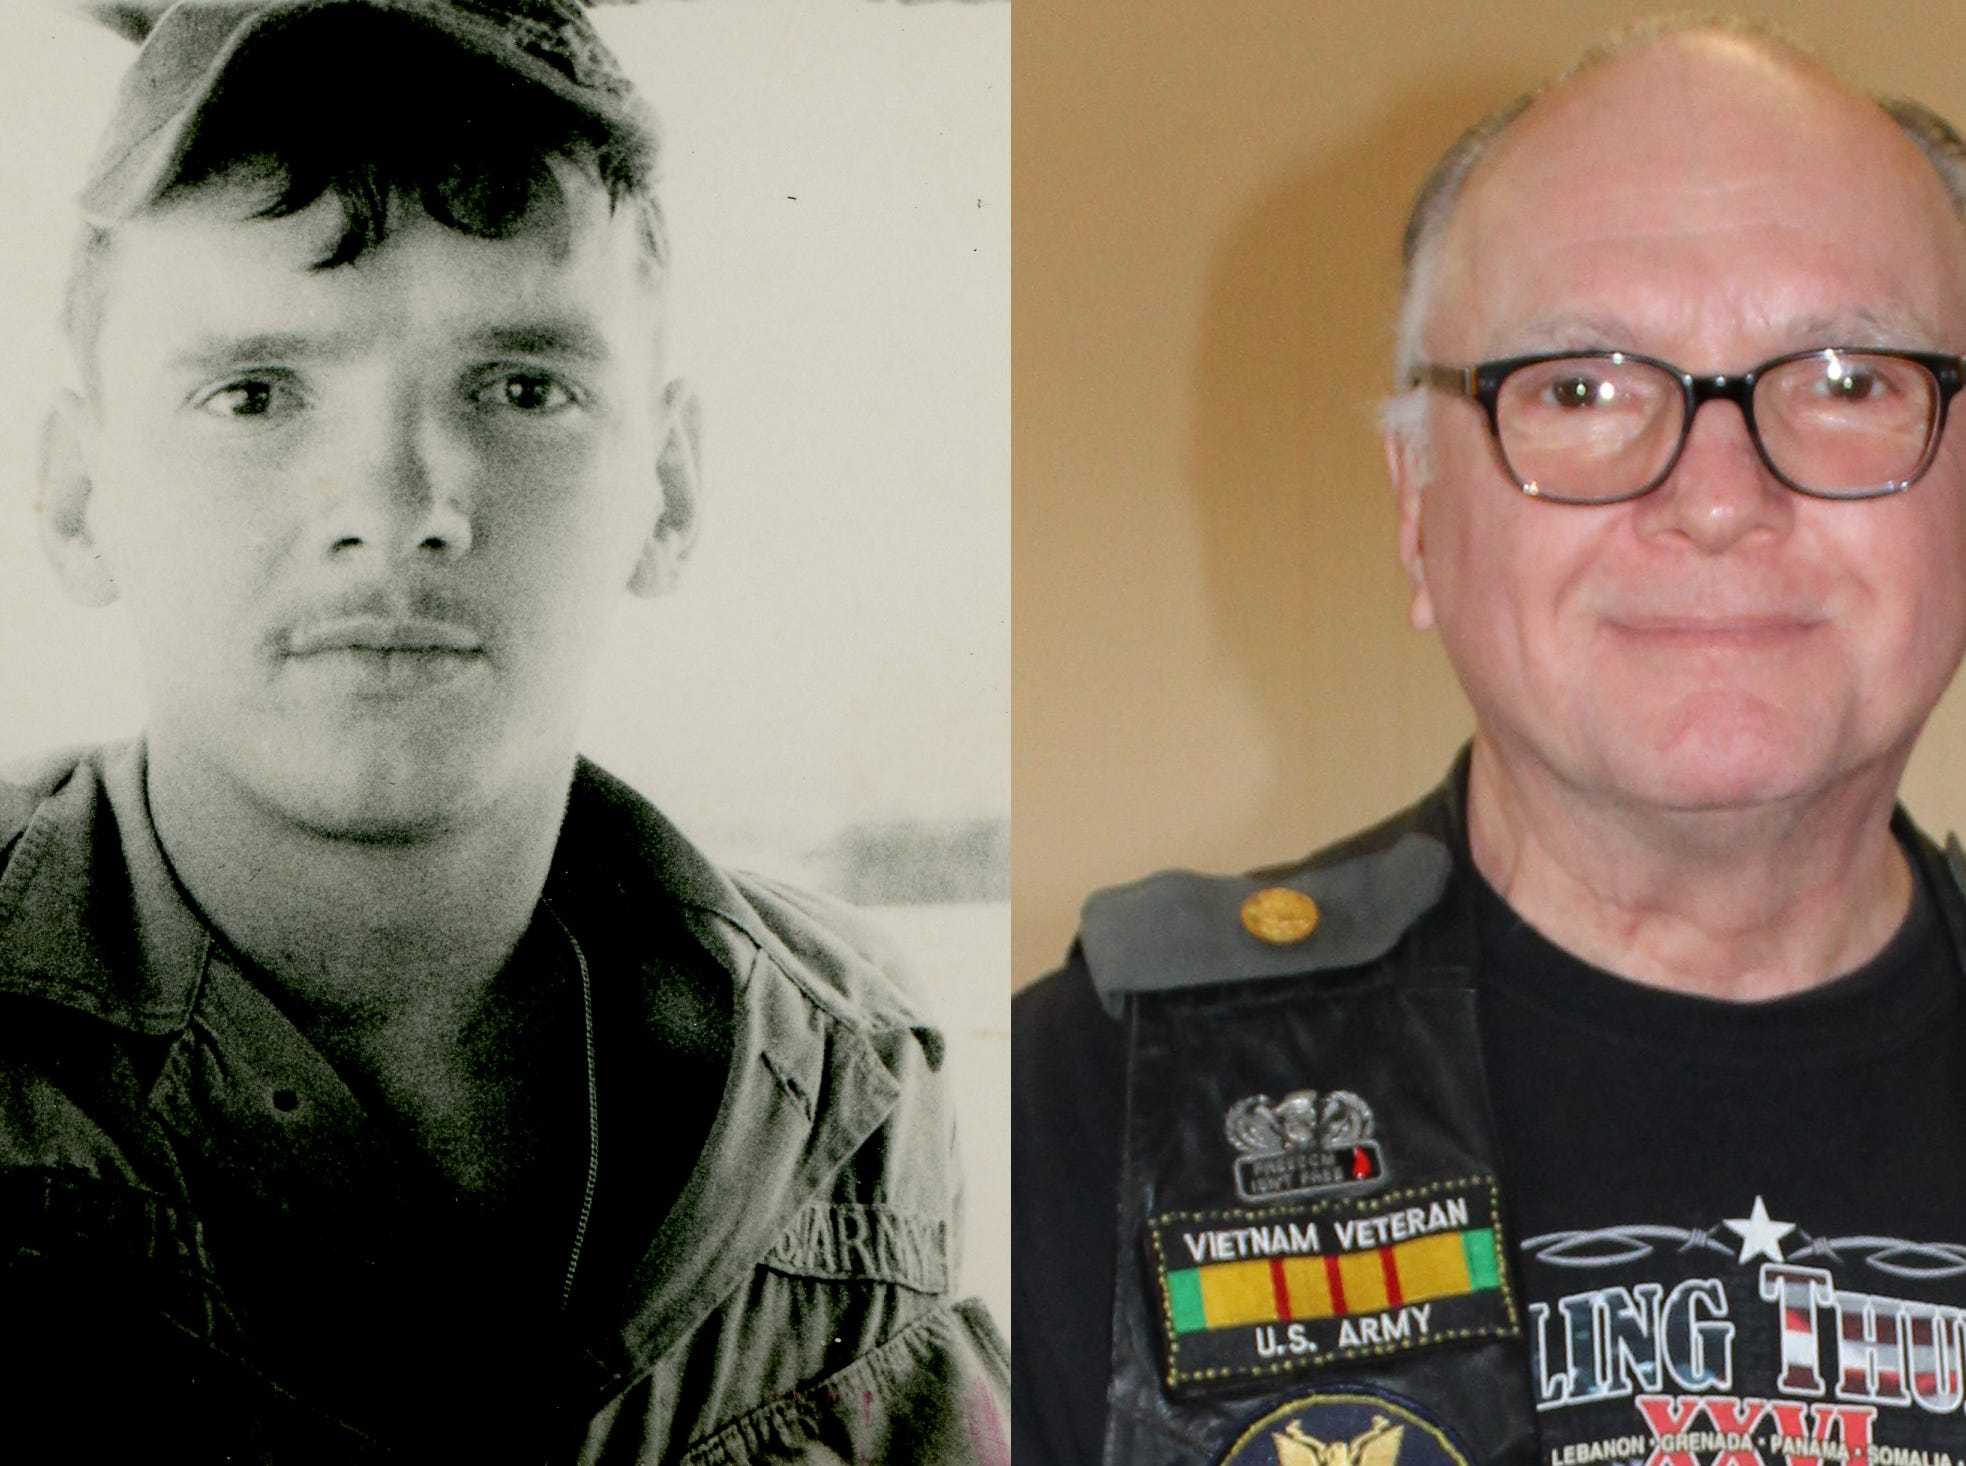 Pictured is a side-by-side photograph of Rolling Thunder, Inc. member Ted Zabohonski in 1968/69 in Bình Định Province, Vietnam (left) and Zabohonski on Feb. 17, 2019 at the Rolling Thunder, Inc. meeting.